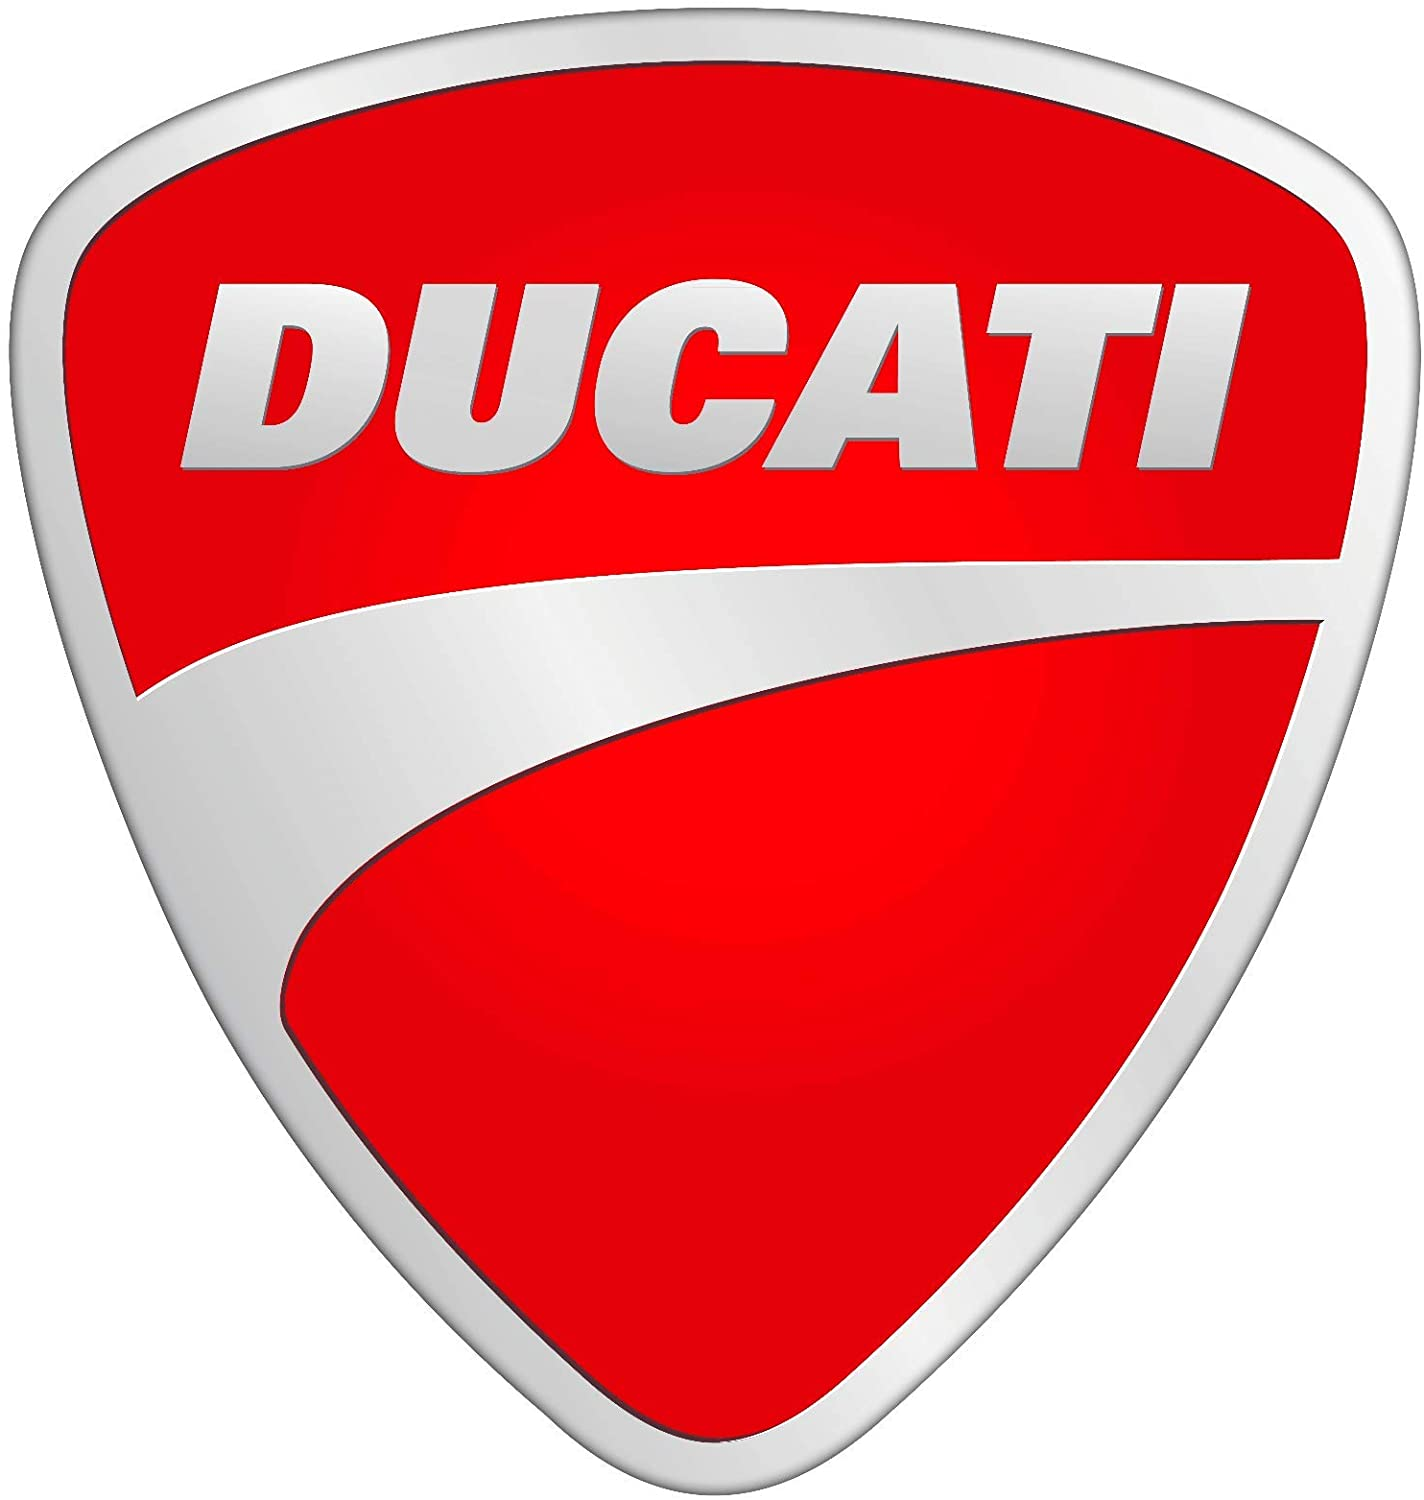 Ducati Parking Metallschild rot